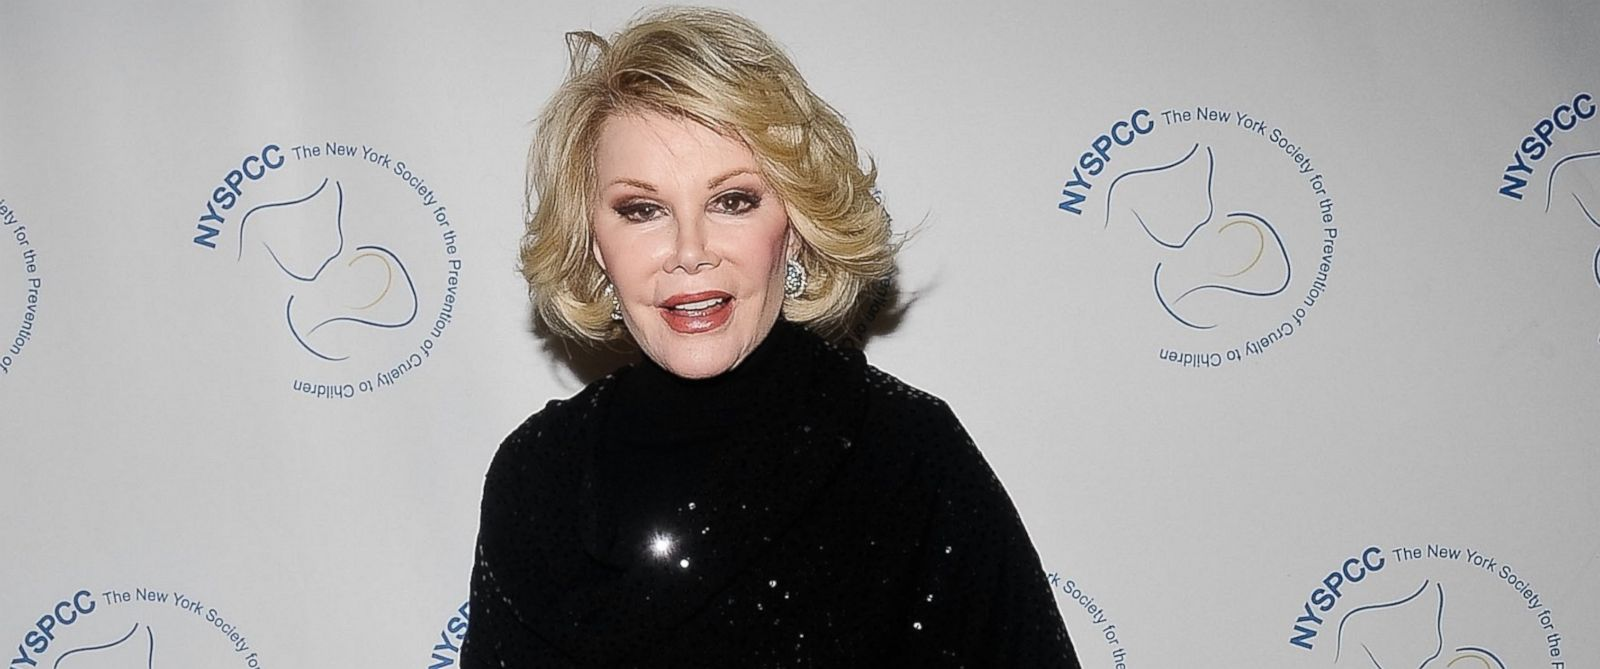 PHOTO: Joan Rivers on November 19, 2013 in New York City.